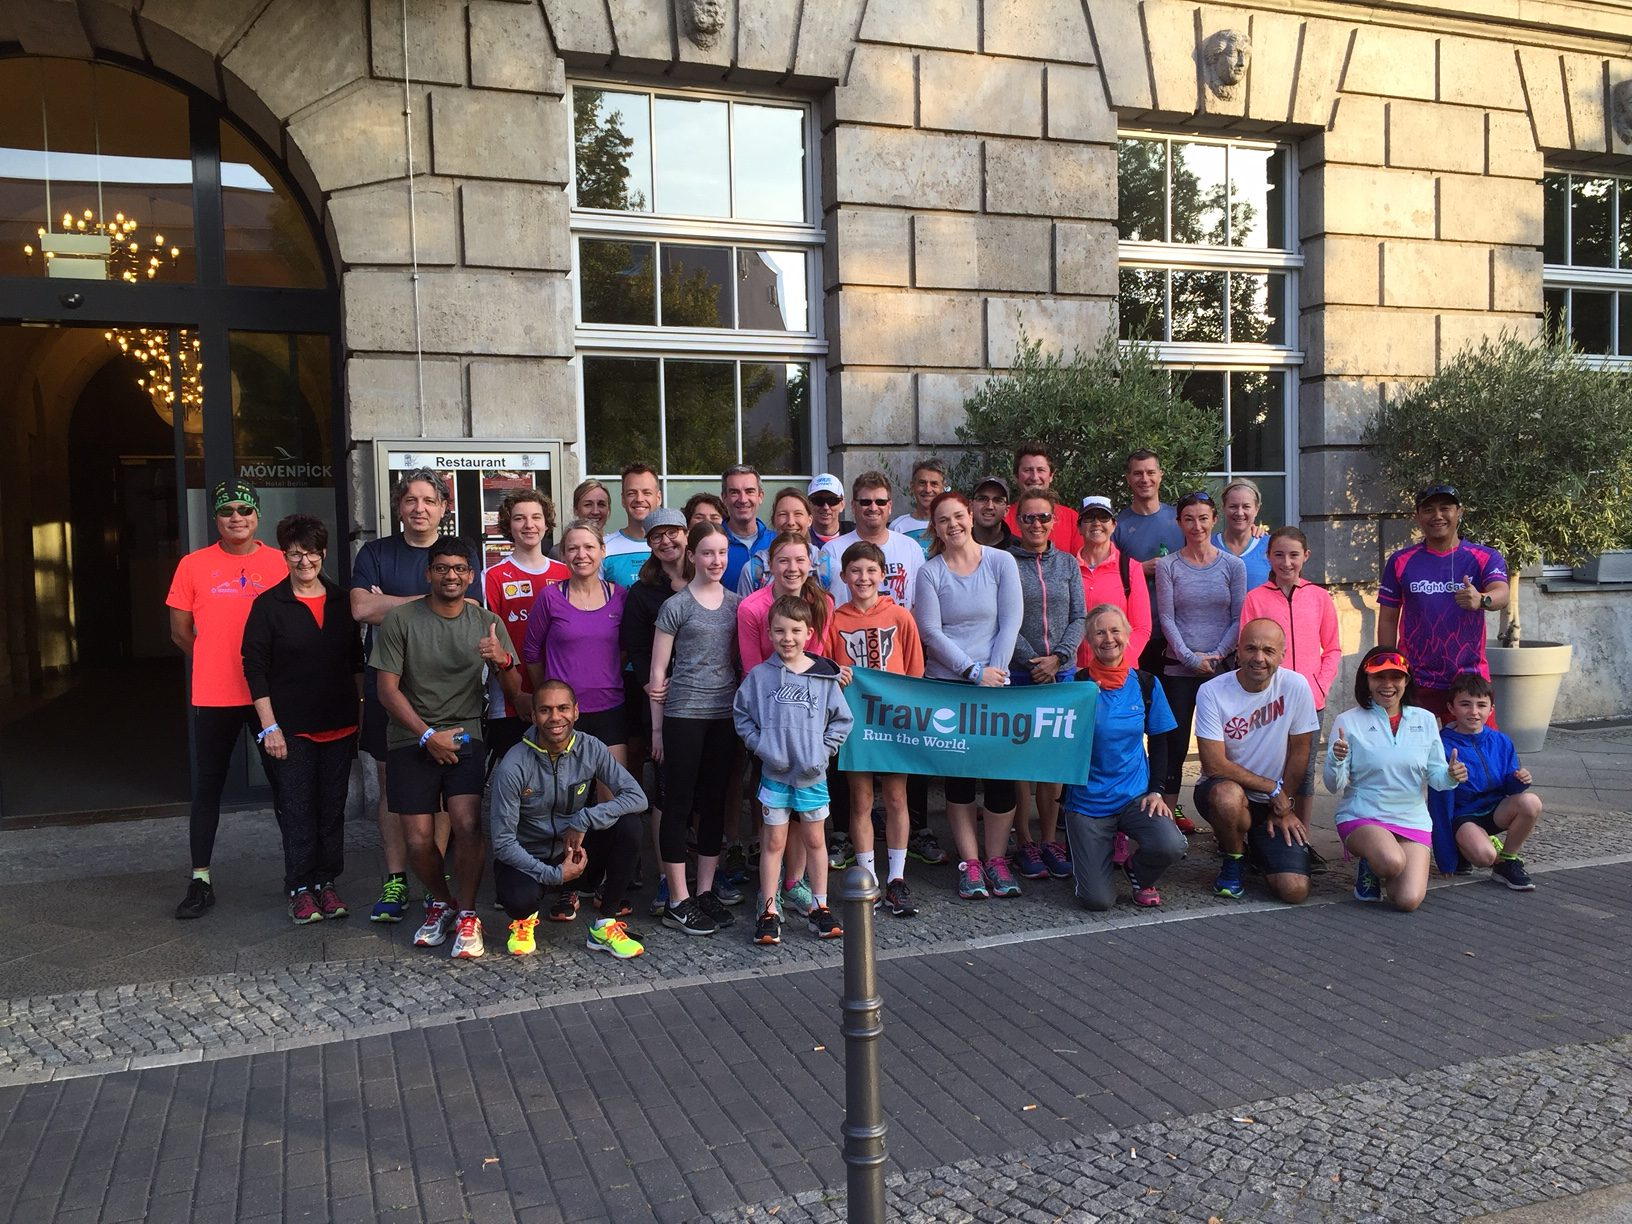 Travelling Fit - BMW Berlin Marathon - Image 18